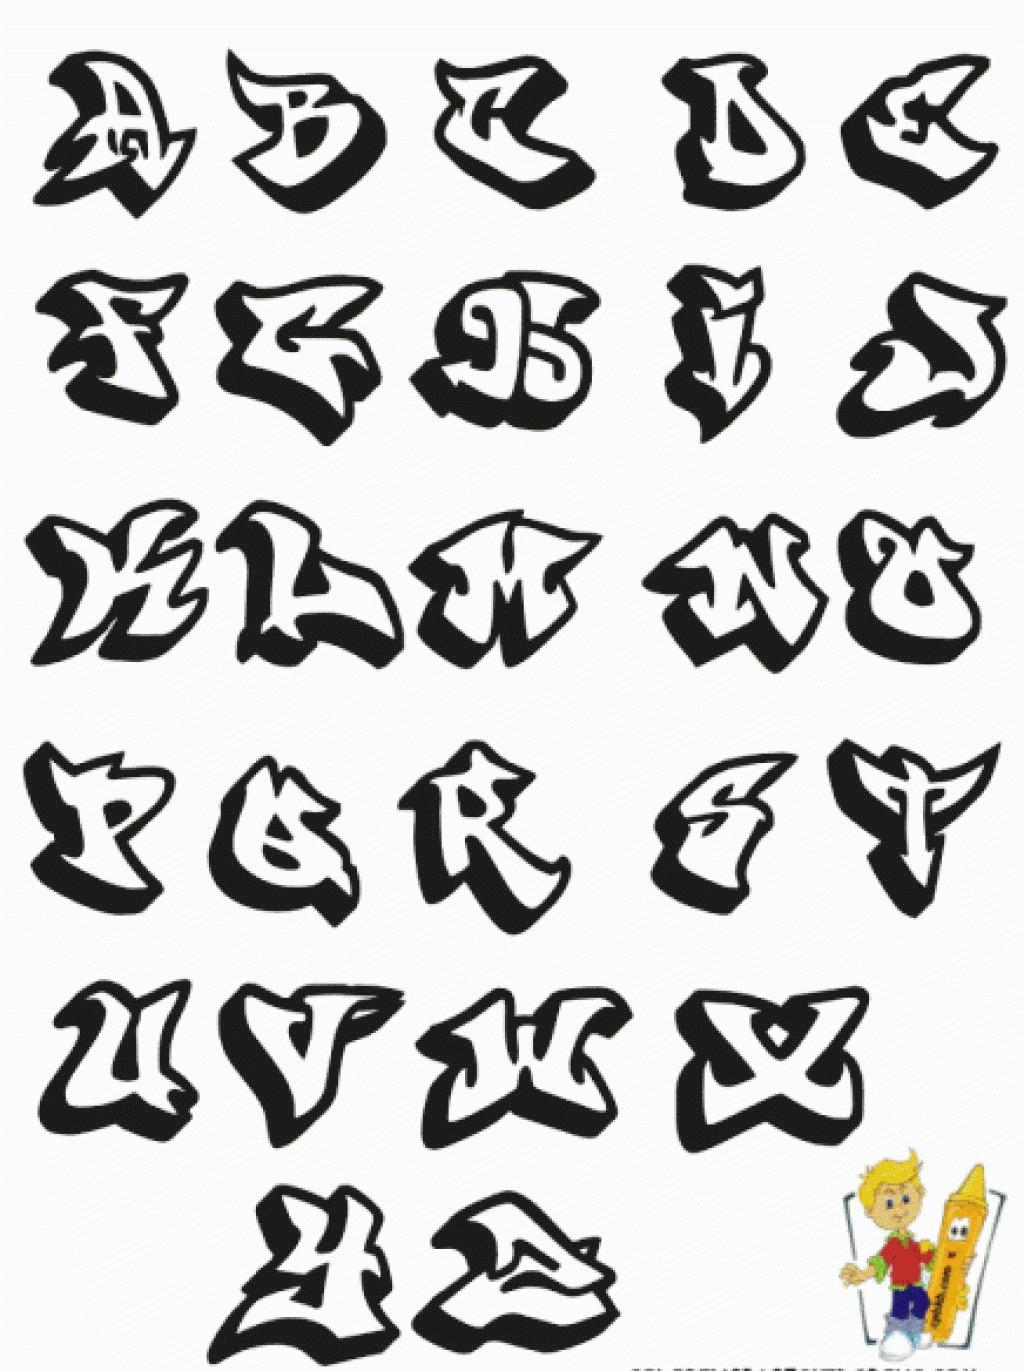 Graffiti Letters A-Z for Android - APK Download